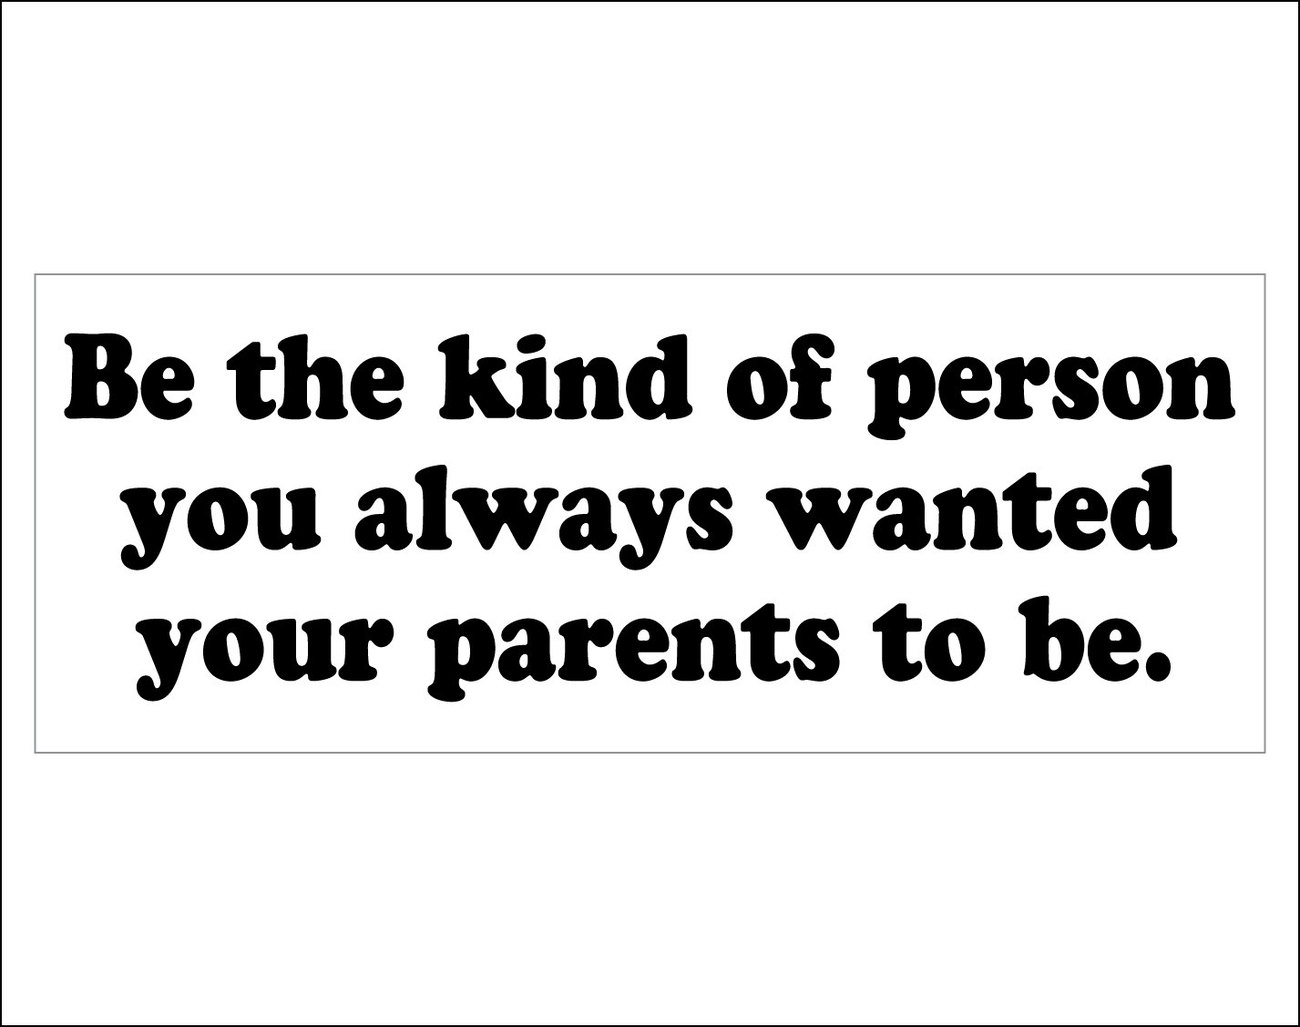 Primary image for Be the kind of person you always wanted your parents to be. - bumper sticker